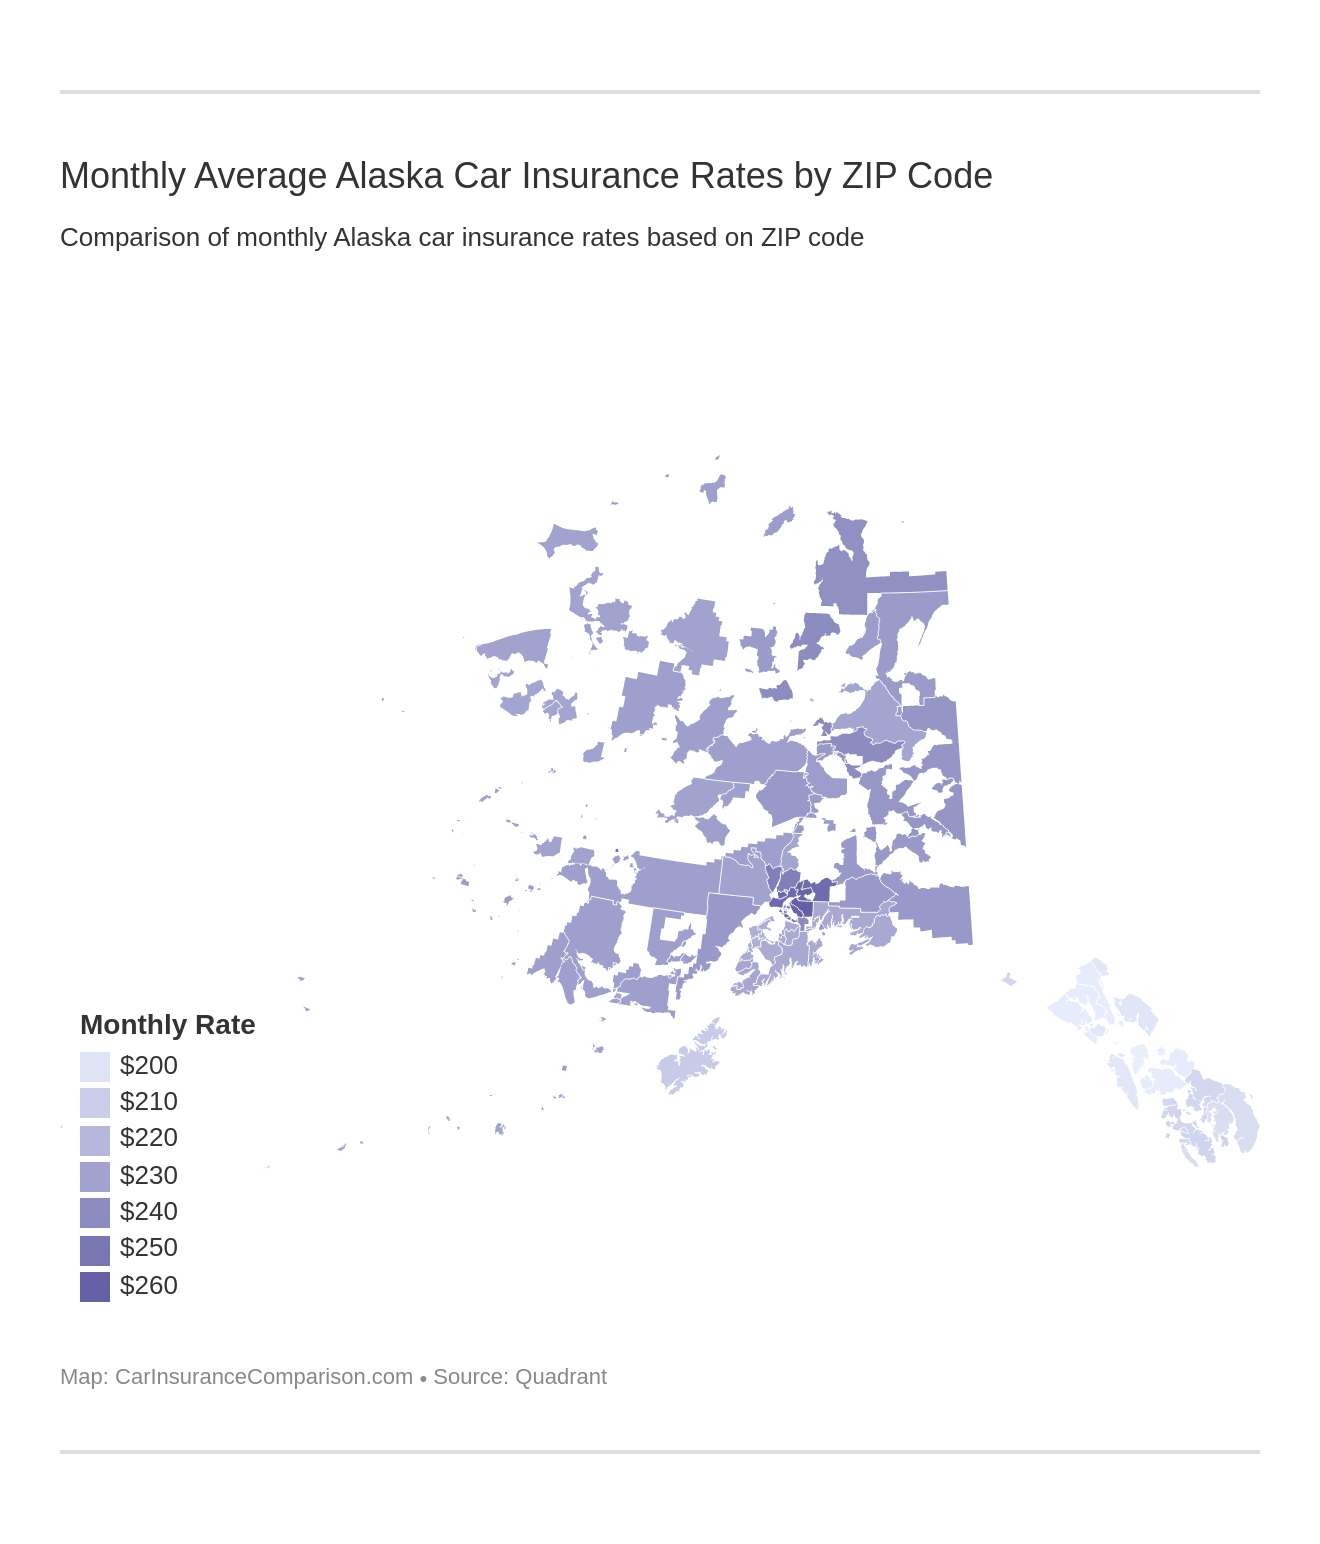 Monthly Average Alaska Car Insurance Rates by ZIP Code